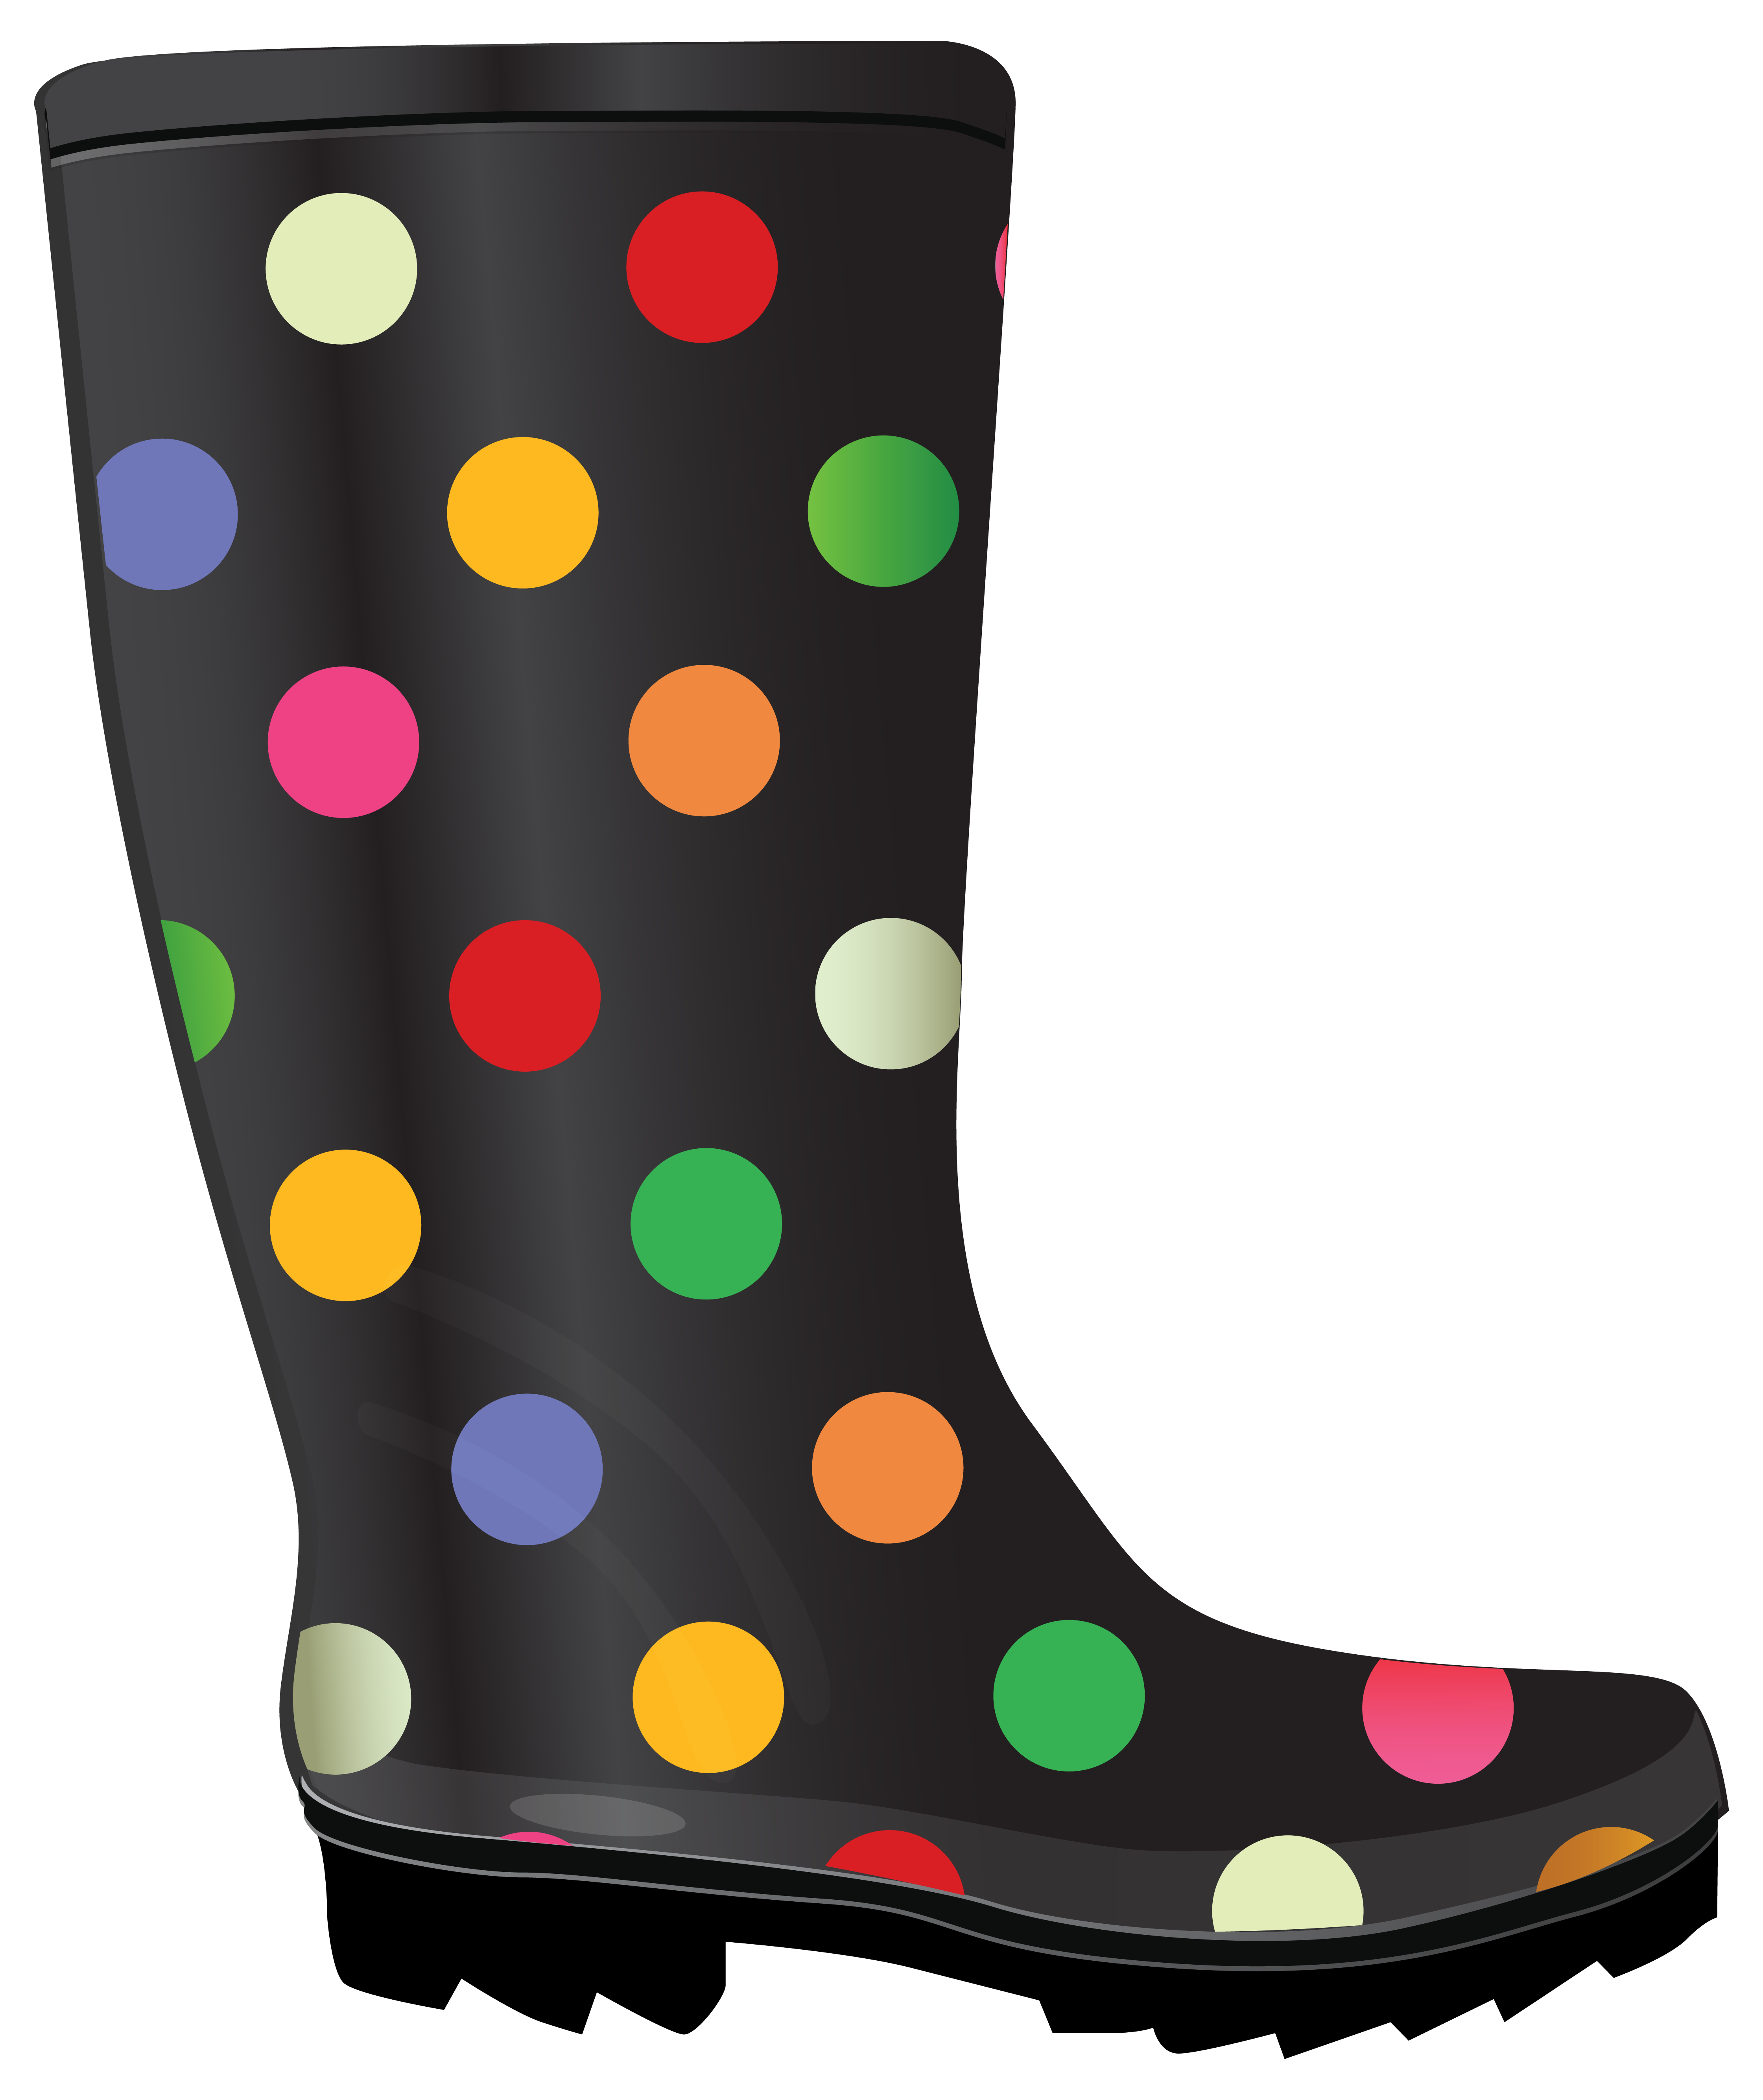 clipart transparent stock Dotted rubber boots rain. Boot clipart gardening boot